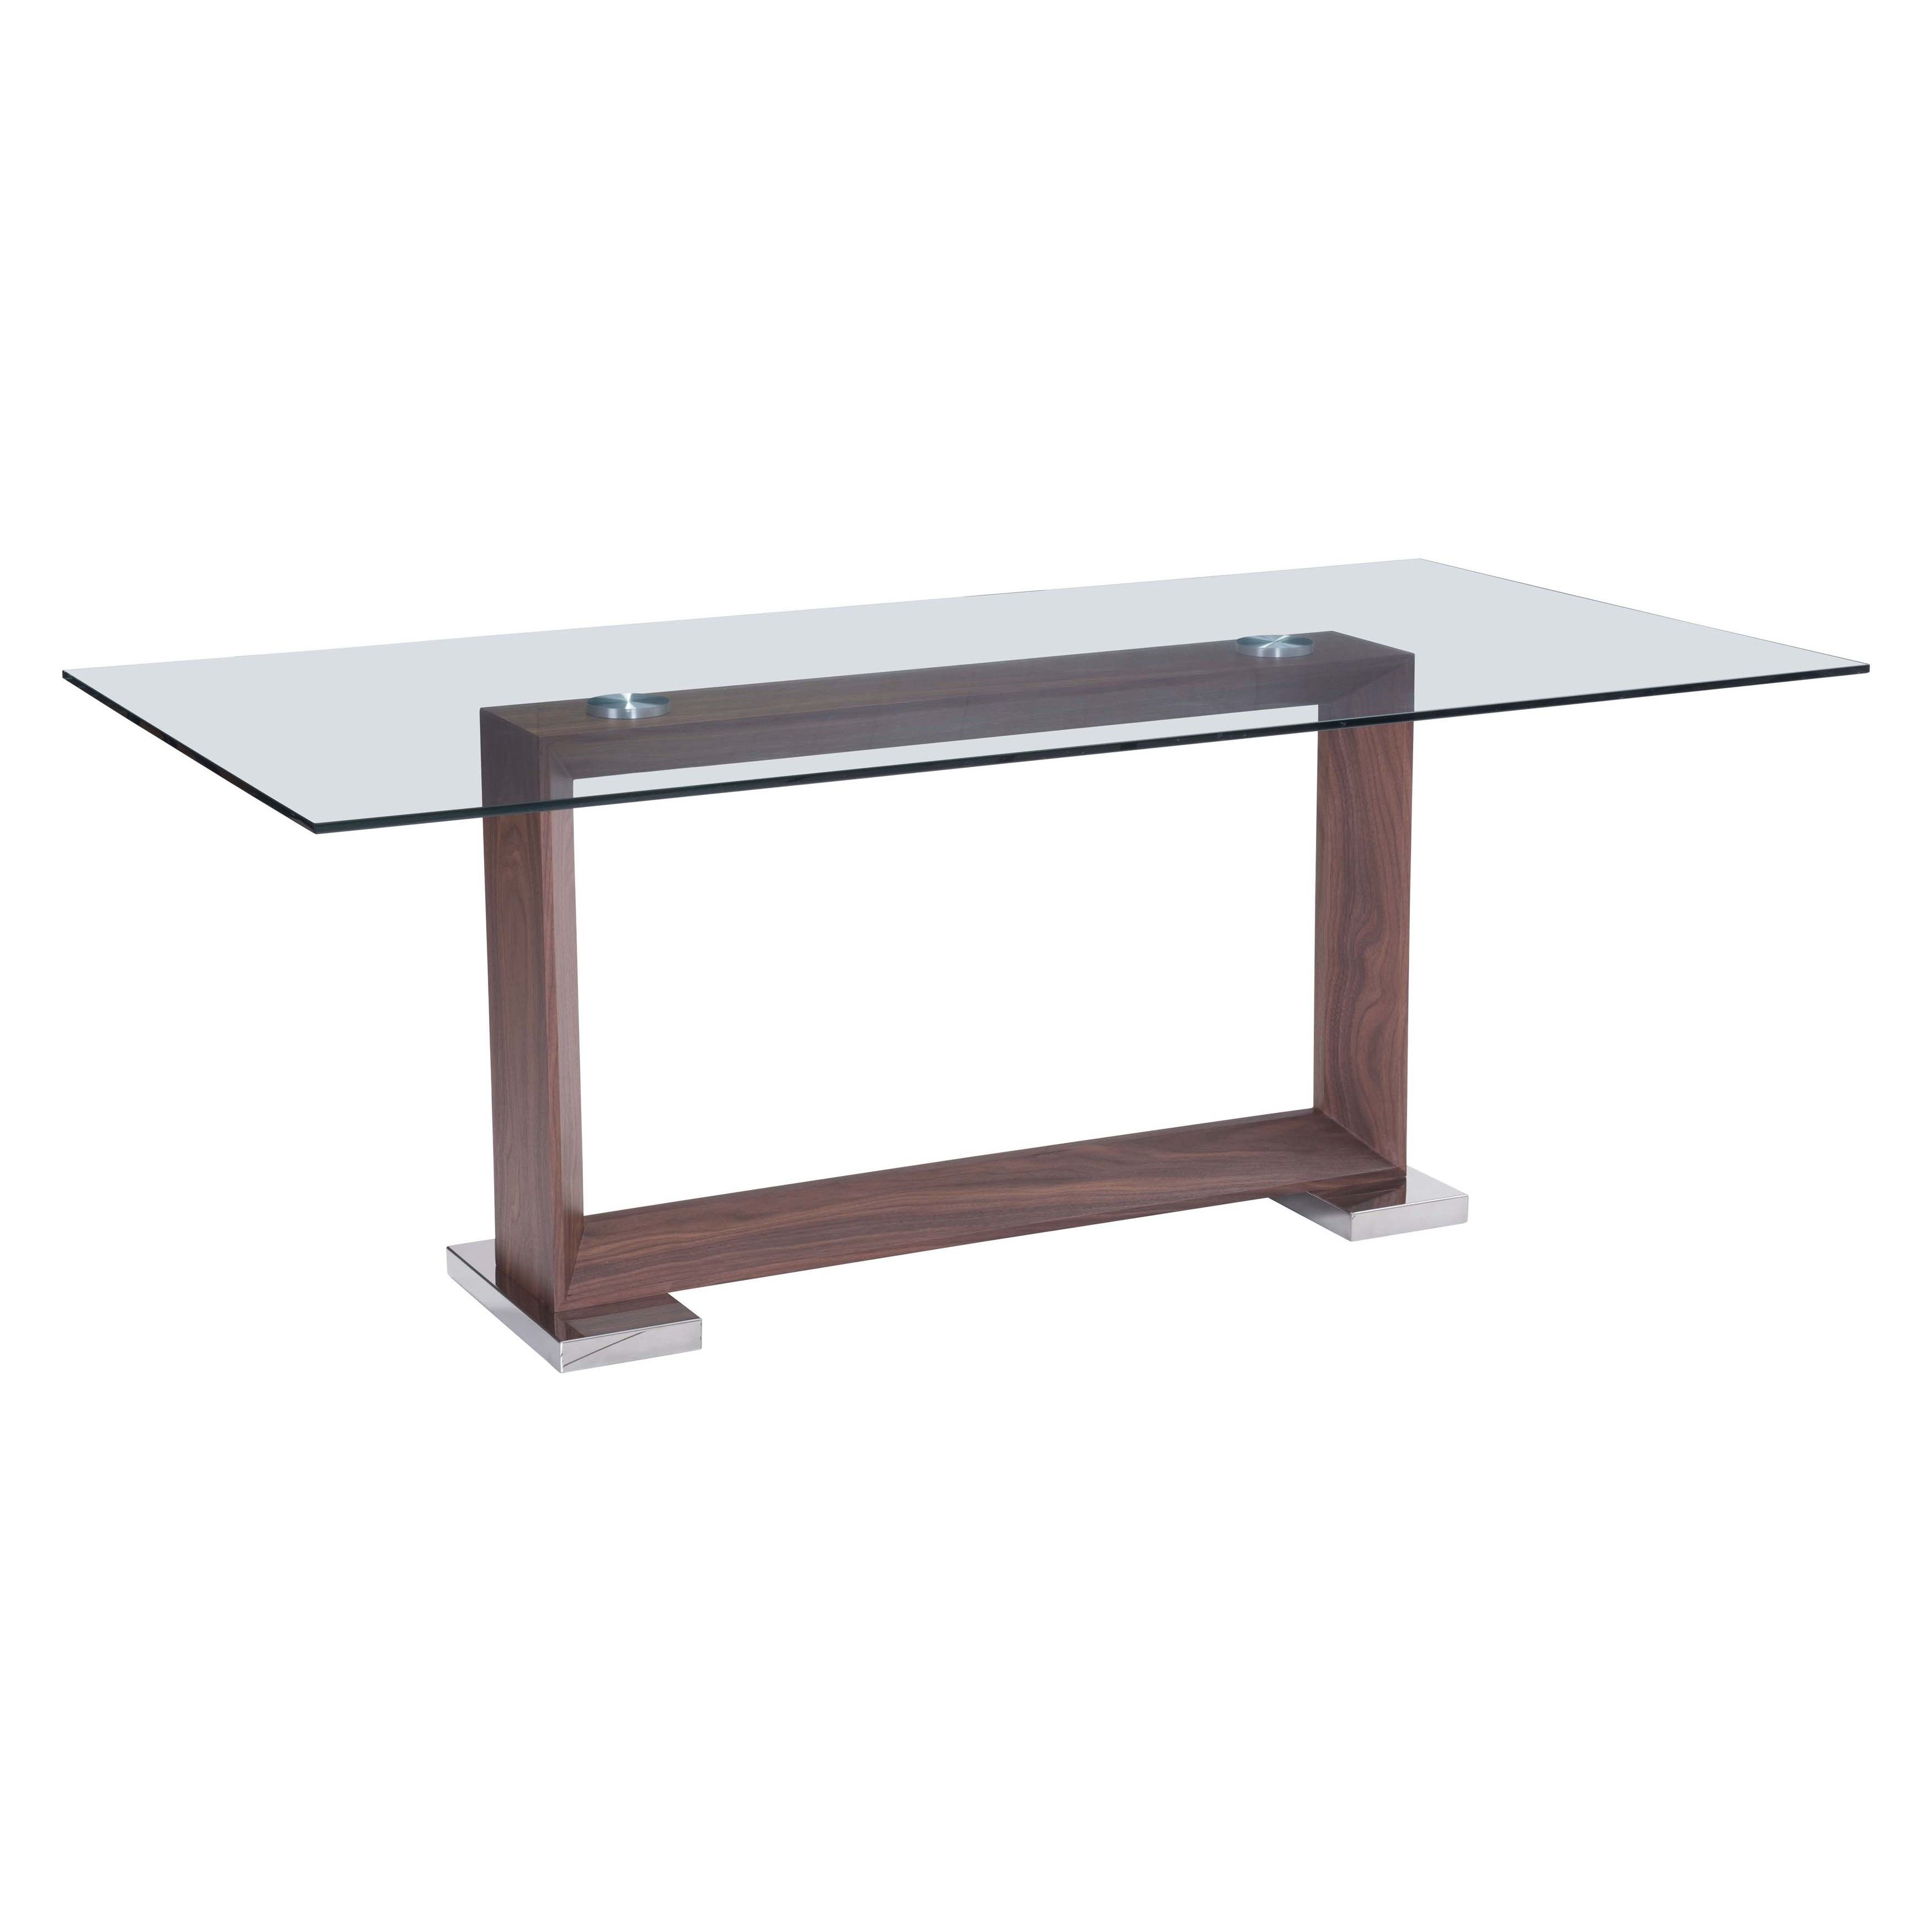 Deals On Dining Tables: Oasis Rectangular Walnut Finish Glass Top Dining Table